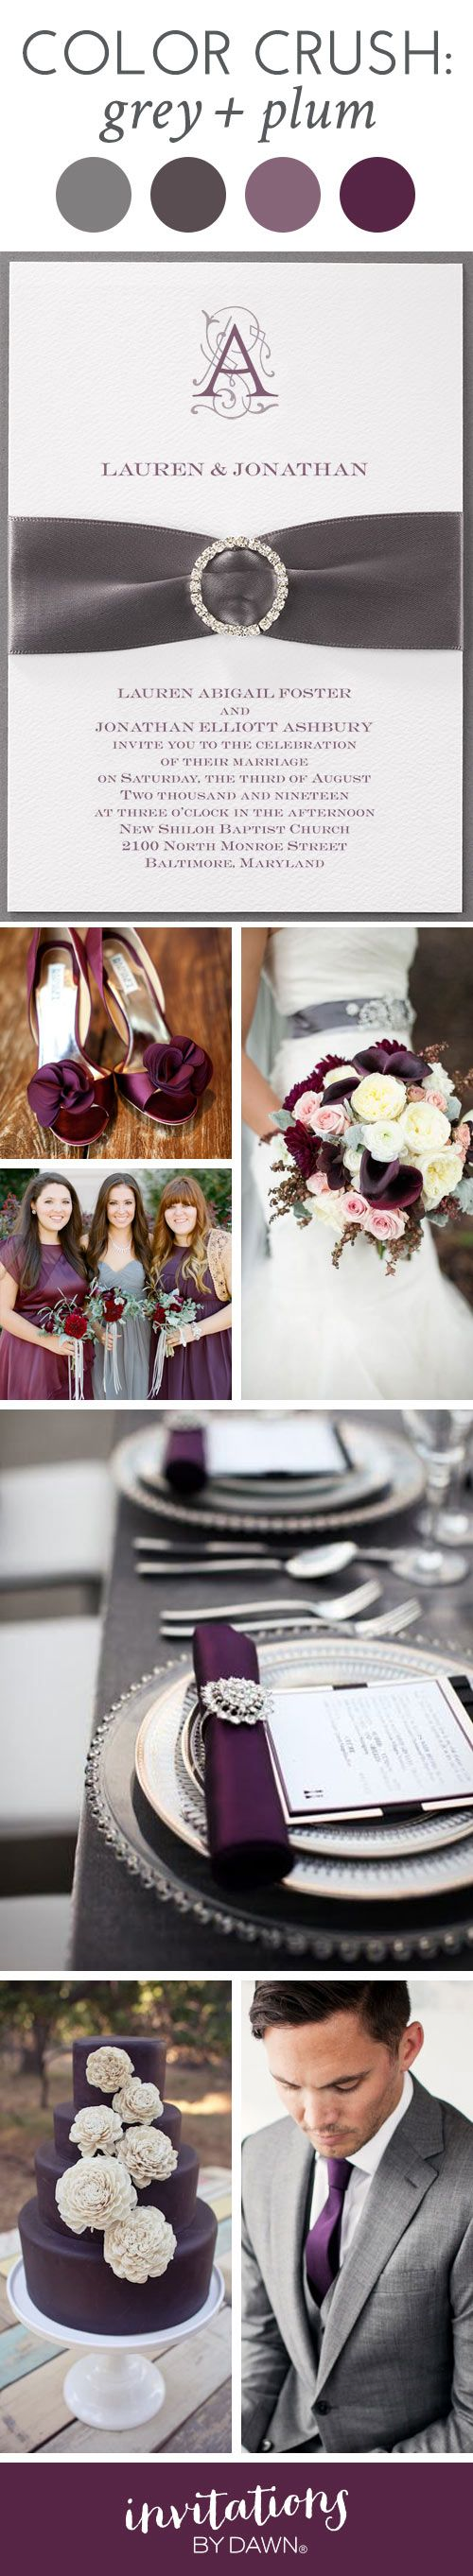 Wedding Color Crush: Grey and Plum I Chic and sophisticated with a touch of dramatic flair, grey and plum wedding colors will make a statement about your style. If you want a timeless wedding look guests will not soon forget, this is the perfect color combo.